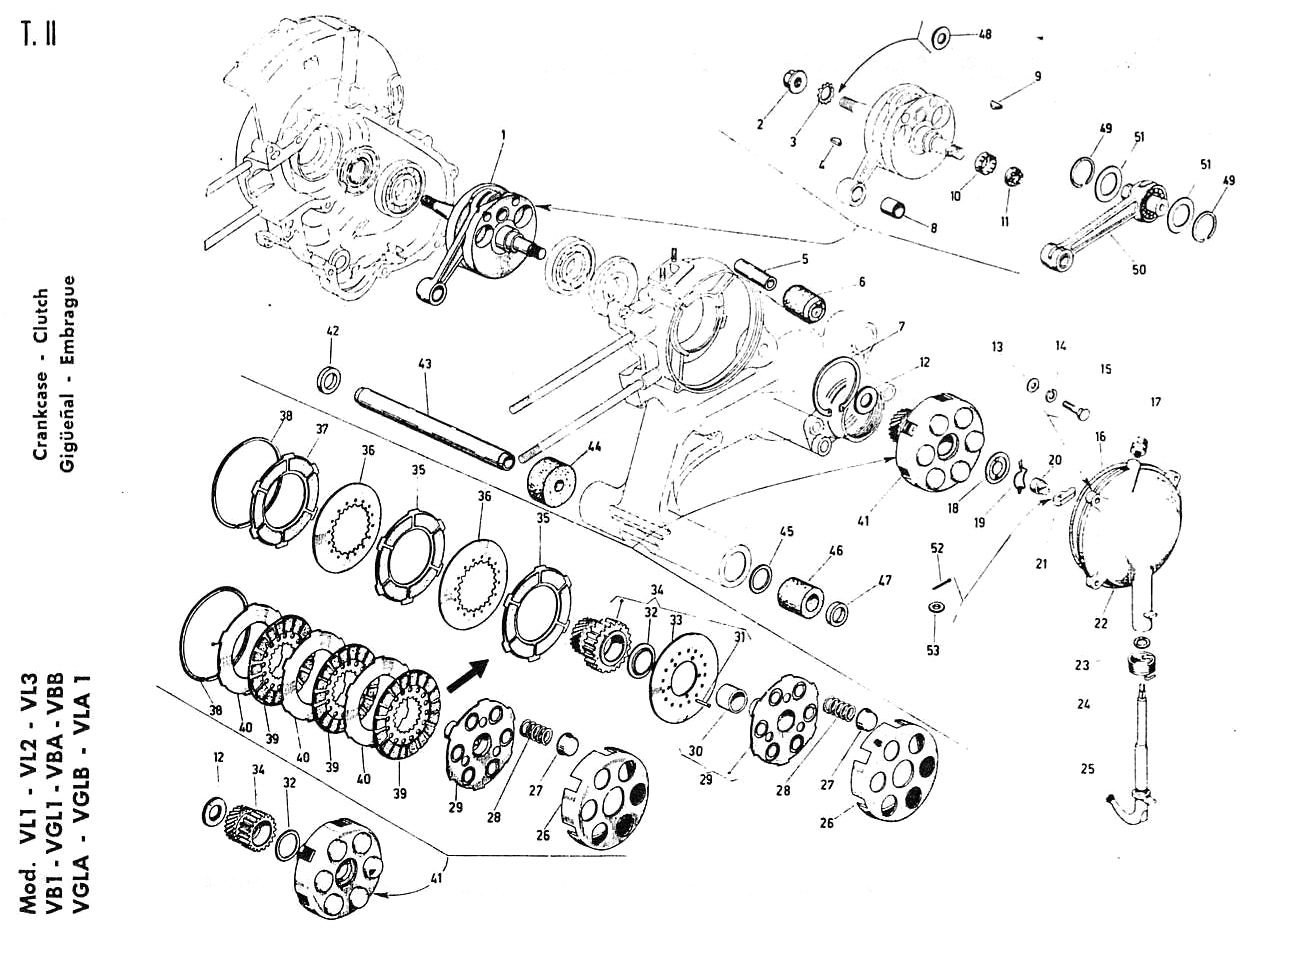 hight resolution of vespa parts diagram wiring diagram for you scooter battery wire diagram vespa engine diagram free wiring